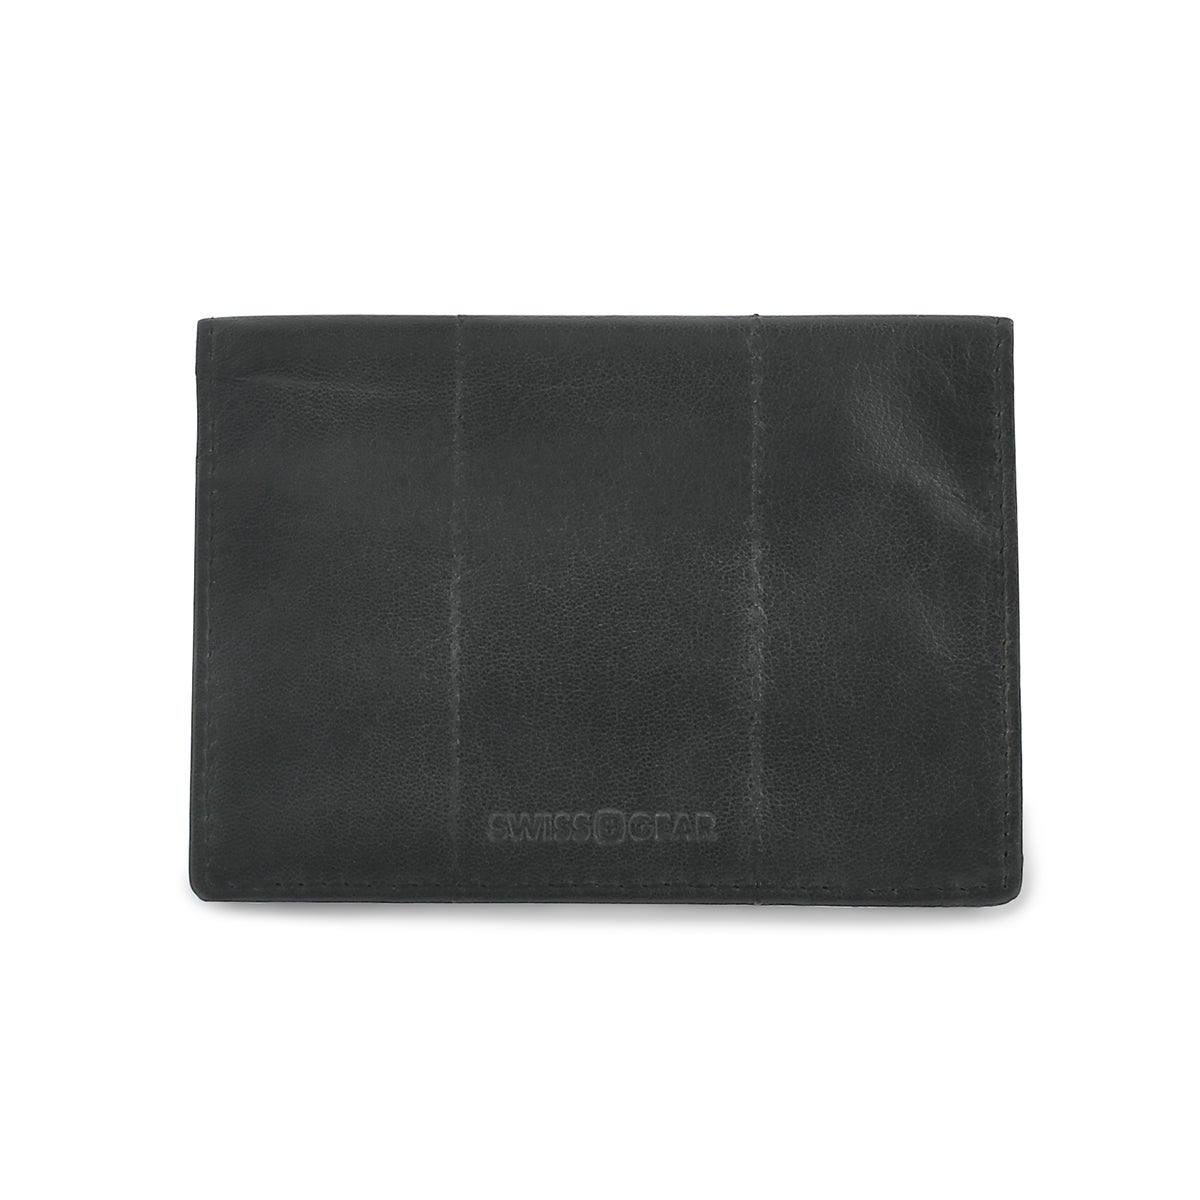 Mns black passport cover